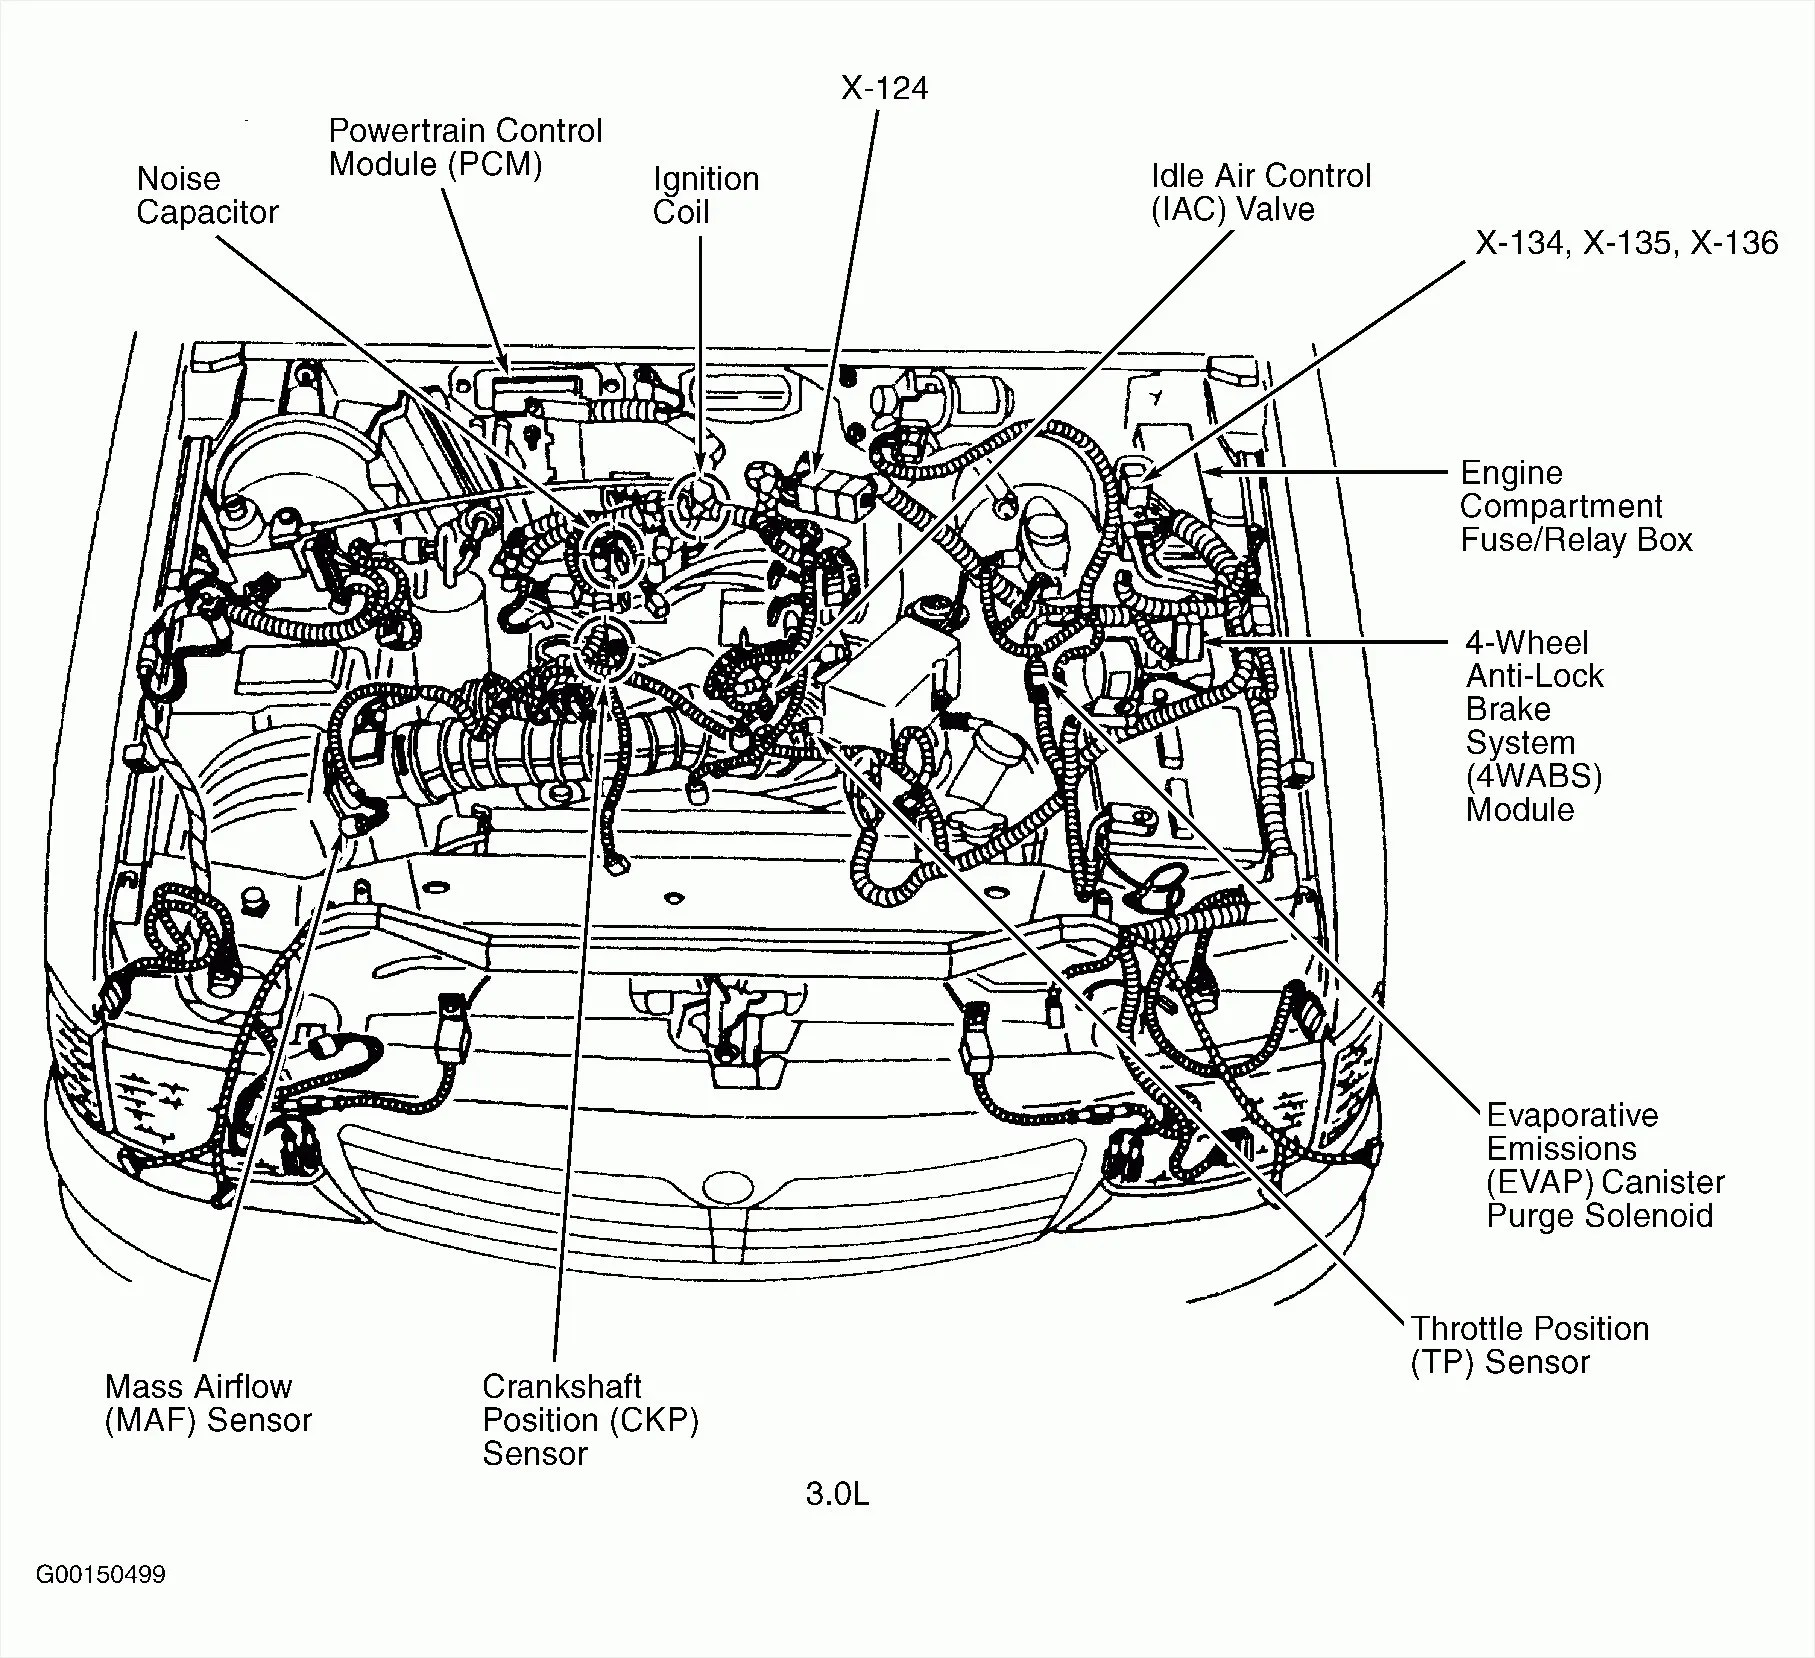 hight resolution of 2008 wrangler engine diagram wiring diagram paper 2008 jeep patriot engine diagram